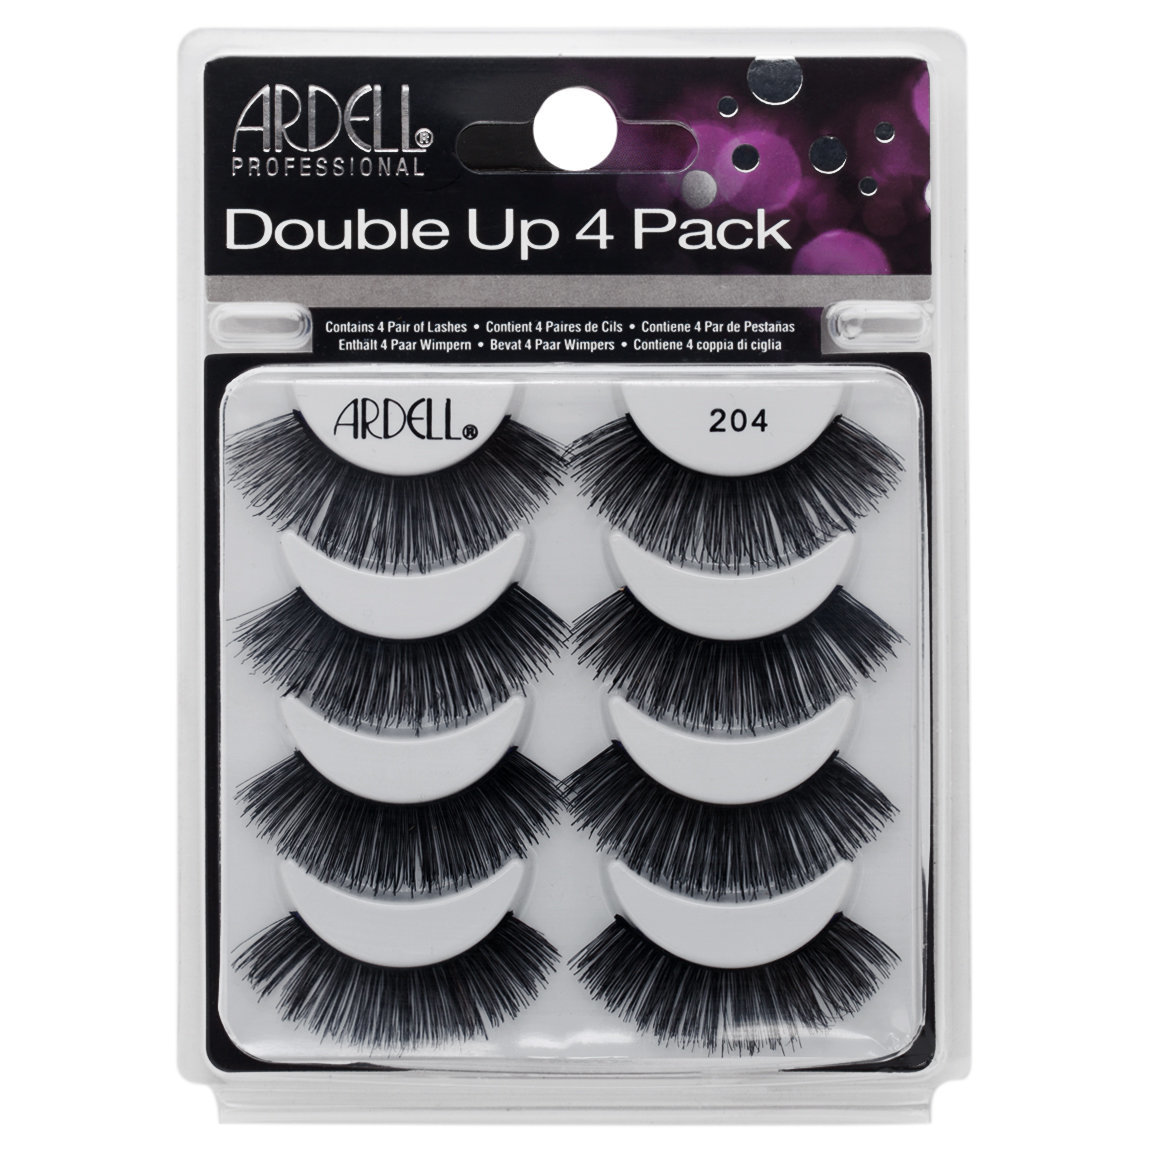 Ardell Double Up 4 Pack  204